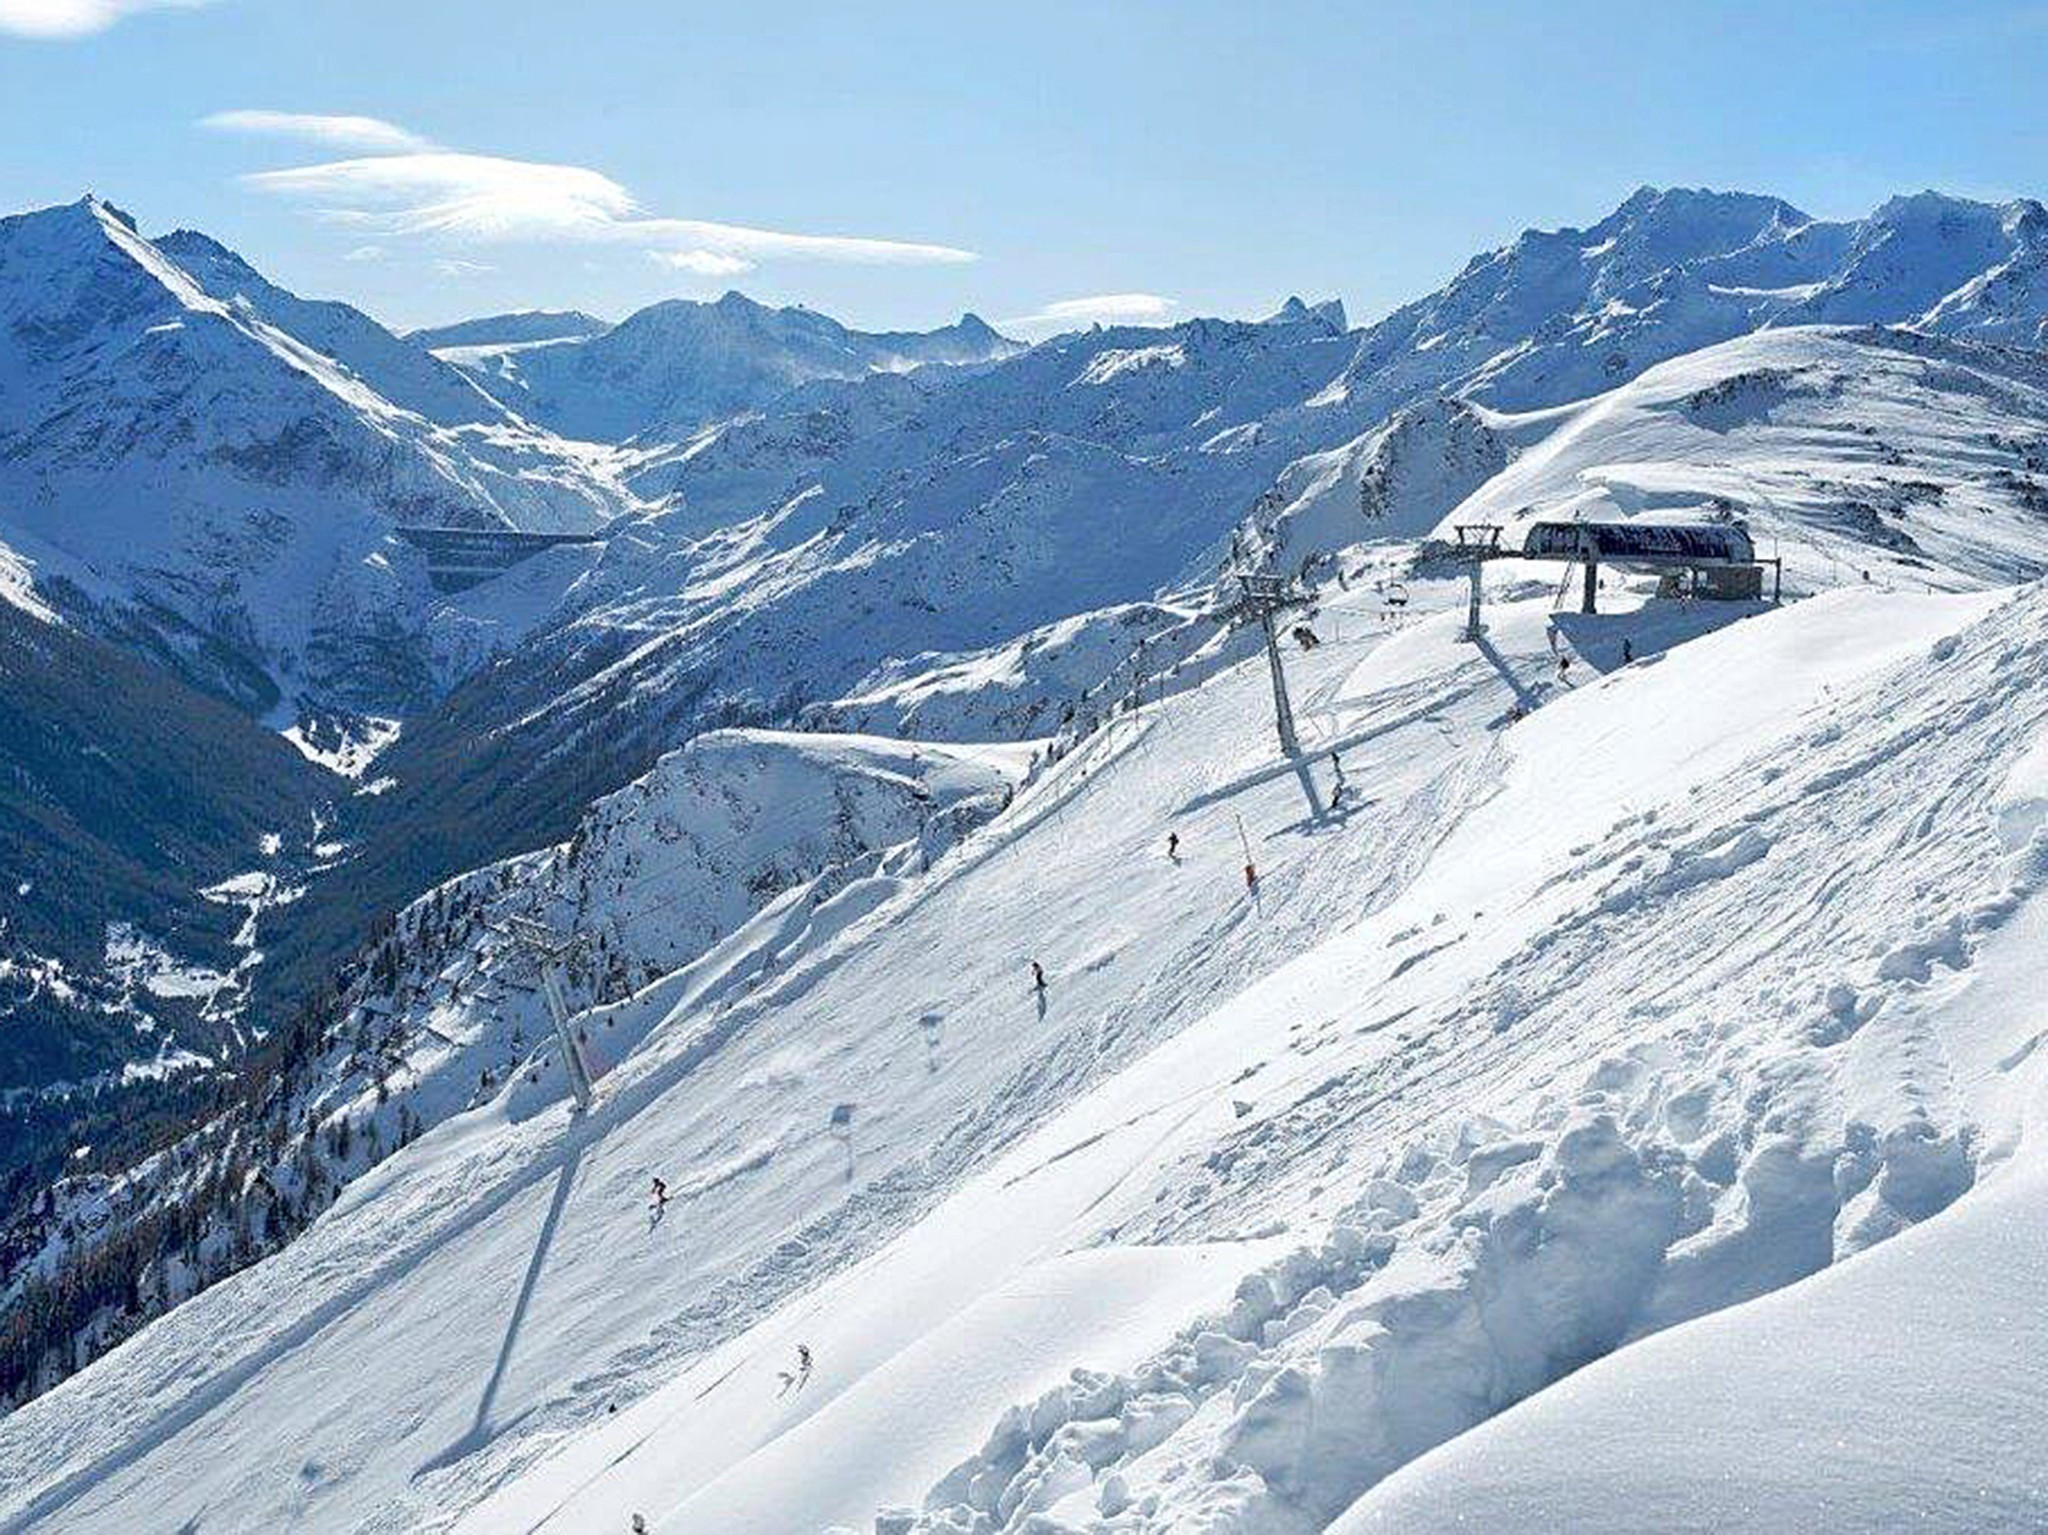 Chalet Collons 1850 - domaine skiable